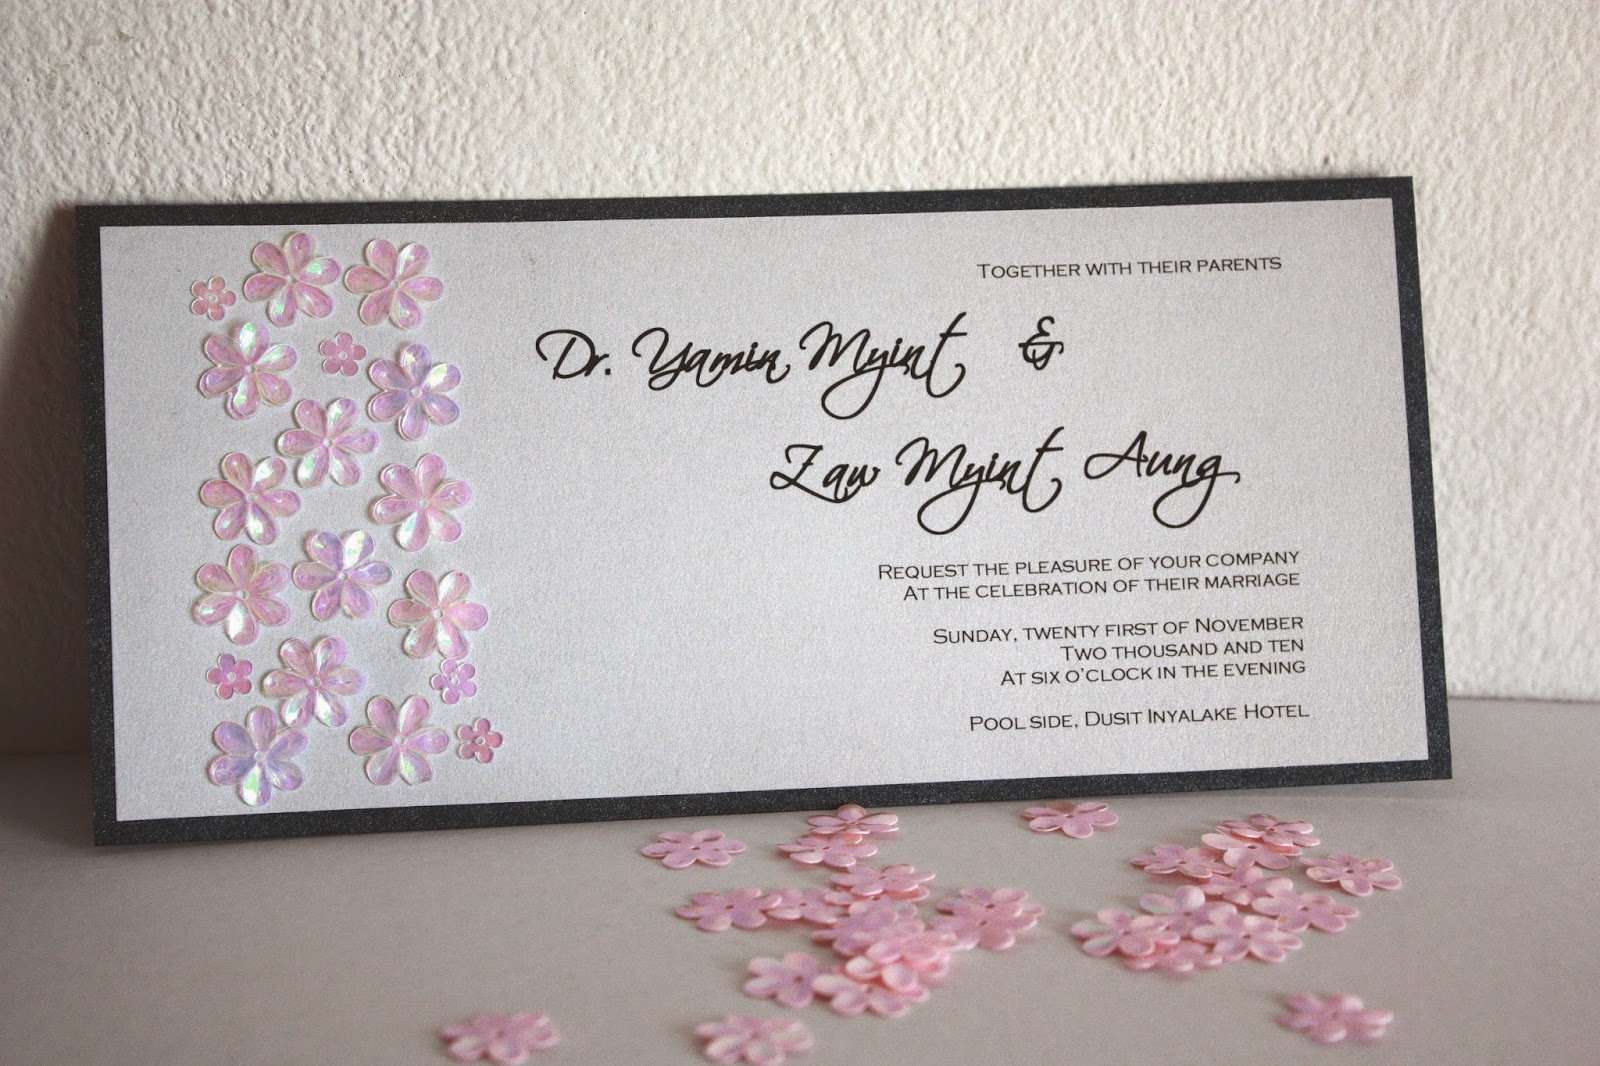 Wedding Invitations Handmade: Floral Sequined Handmade Wedding Invitation Card